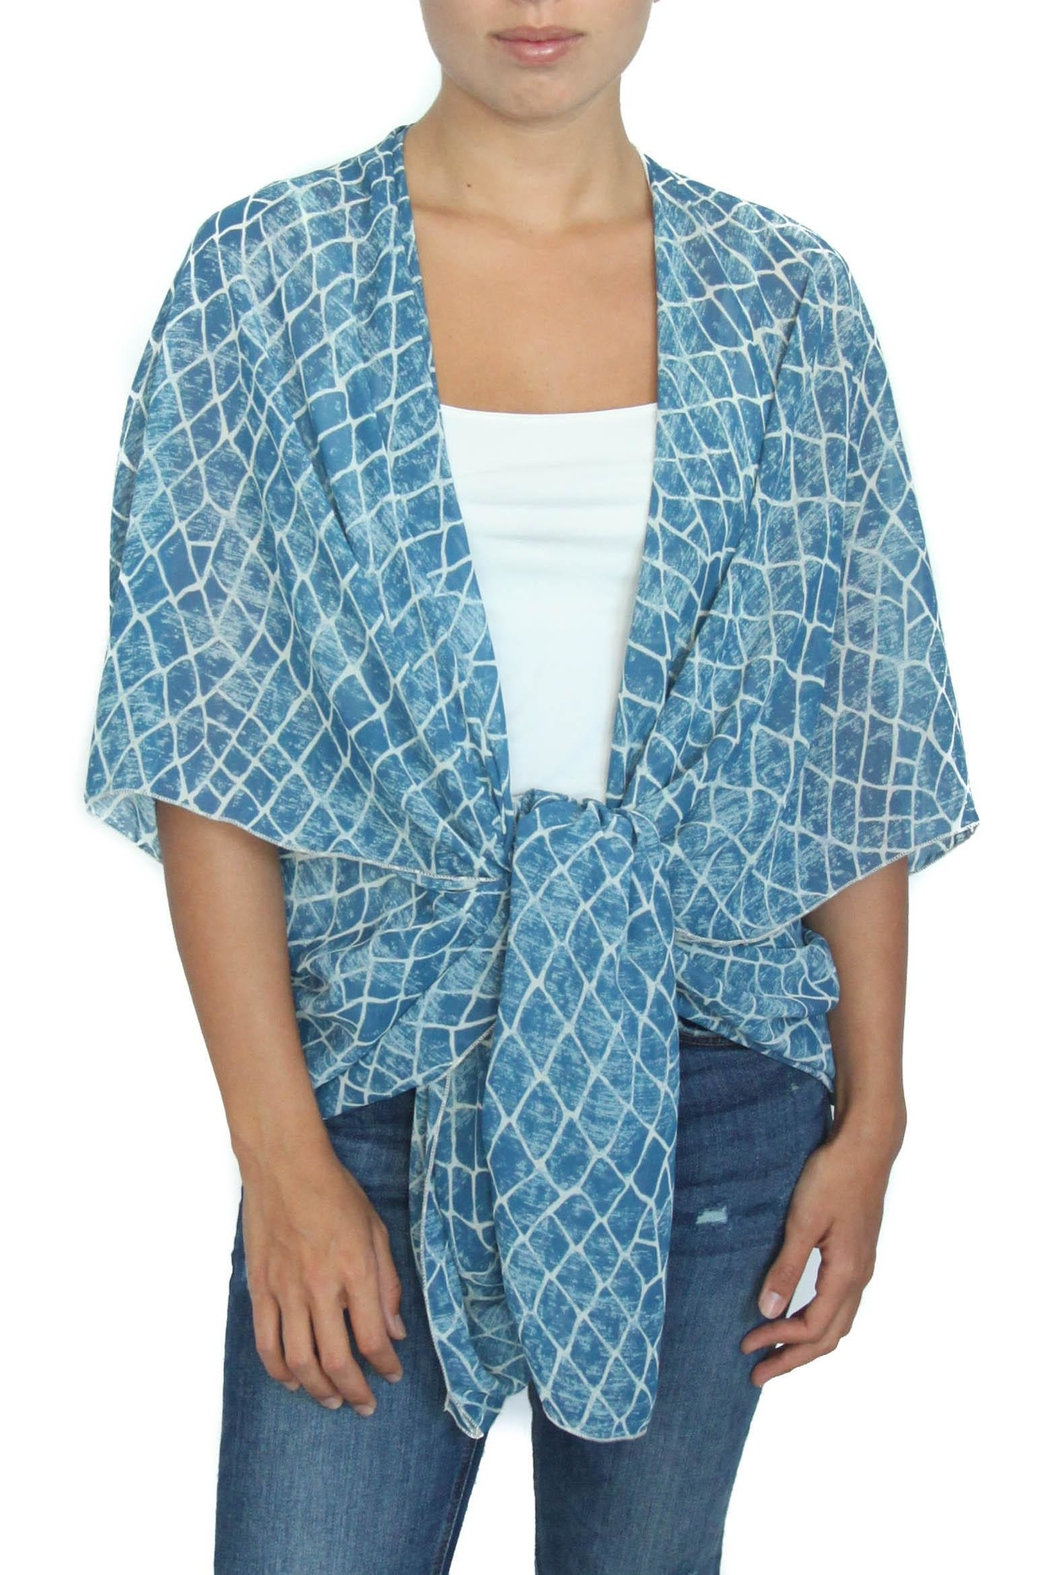 LOVEleigh Blue Alligator Kimono - Front Cropped Image